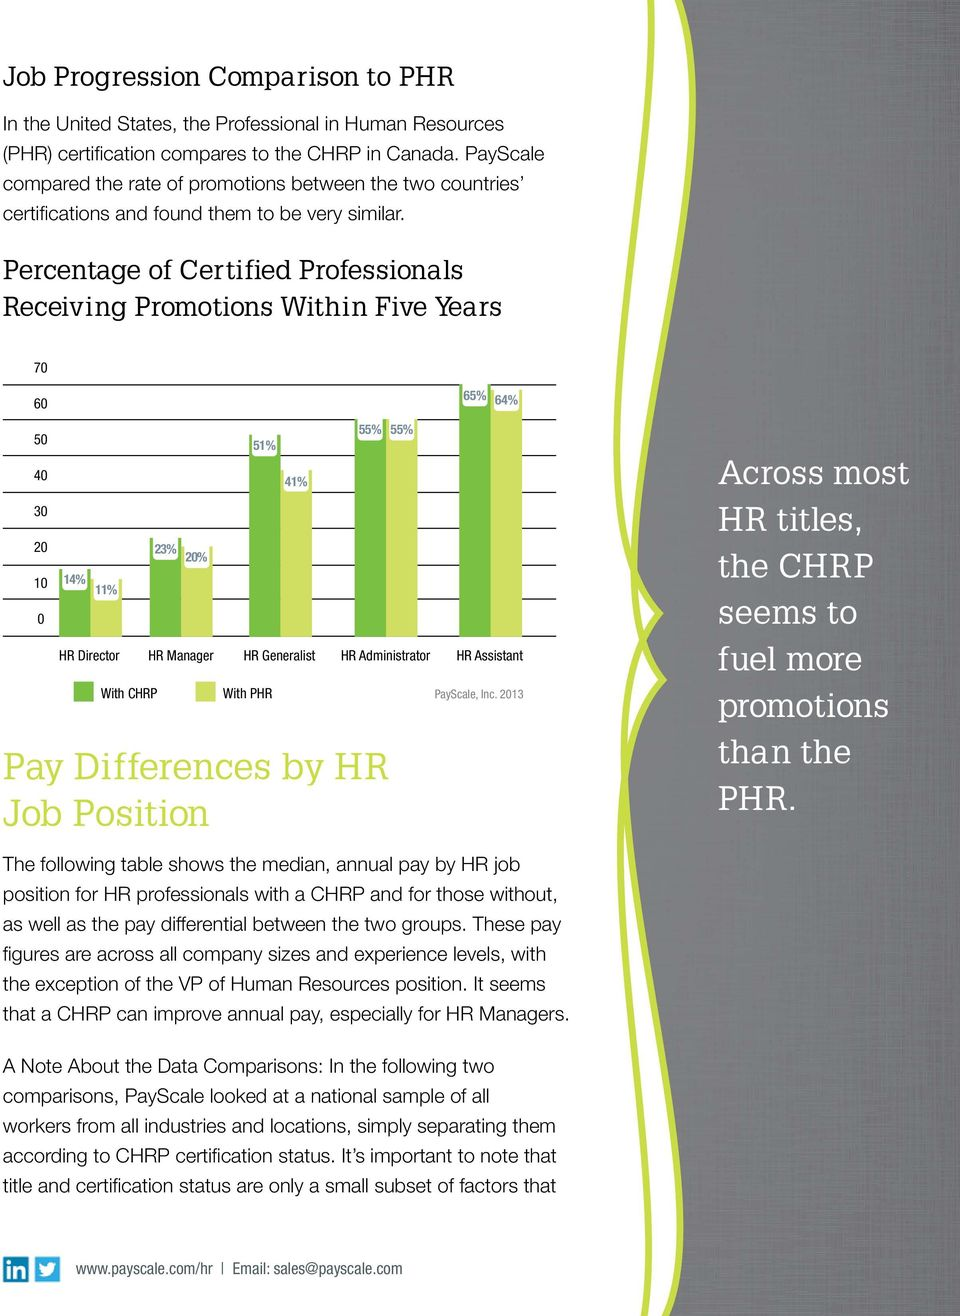 Percentage of Certified Professionals Receiving Promotions Within Five Years 70 60 65% 64% 50 40 30 20 10 0 14% 11% 23% 20% 51% 41% HR Director HR Manager HR Generalist HR Administrator HR Assistant